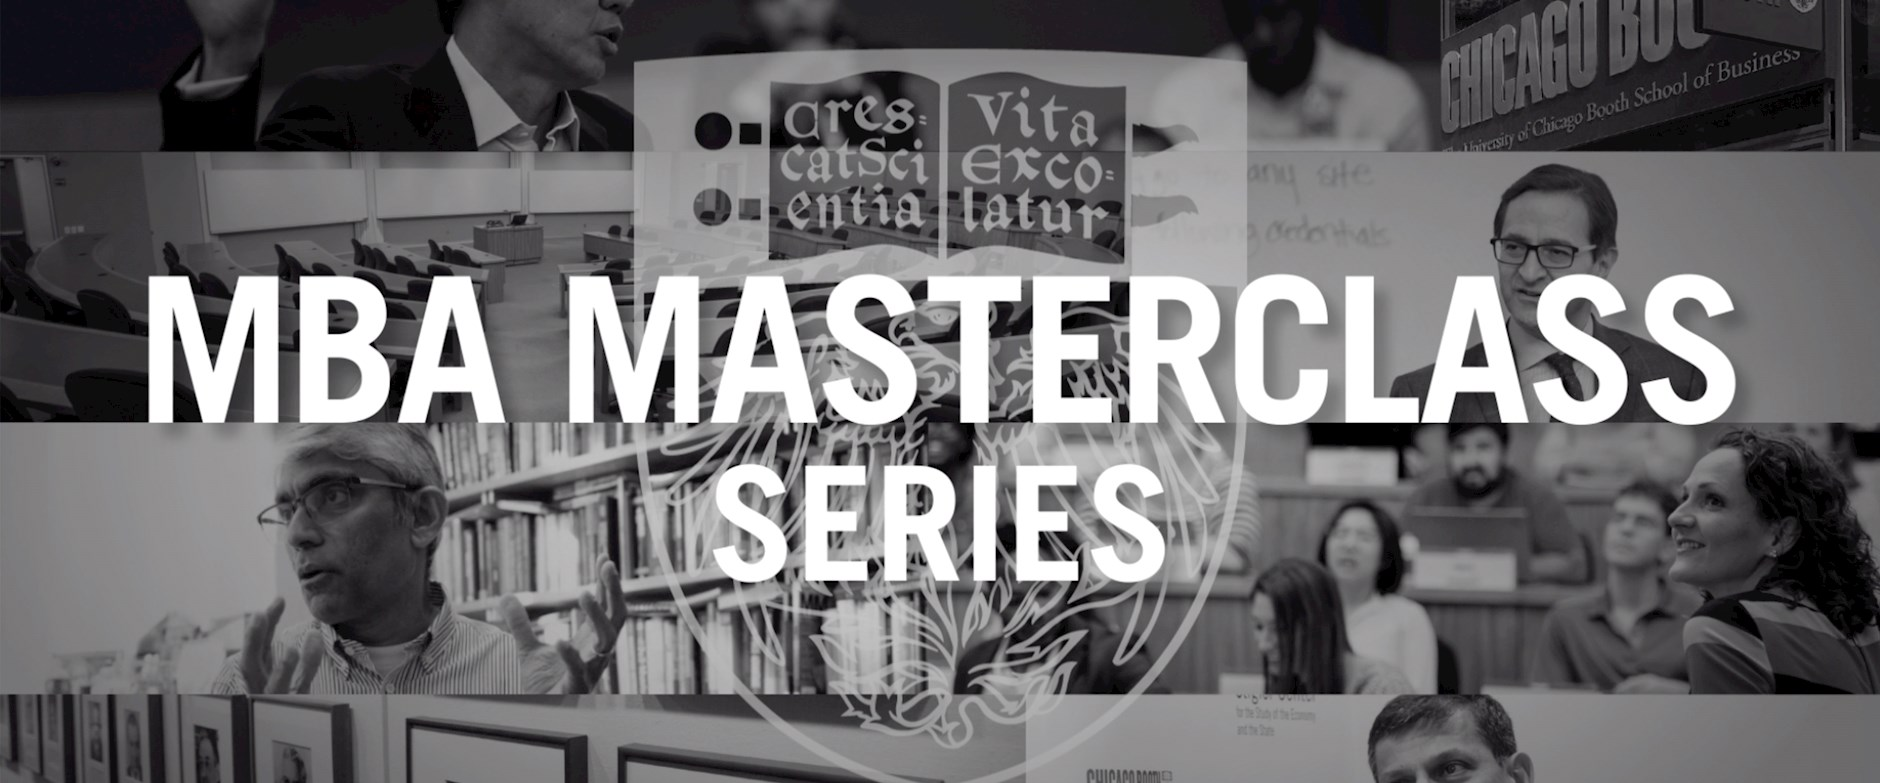 Chicago Booth MBA Masterclass Series Promo Video